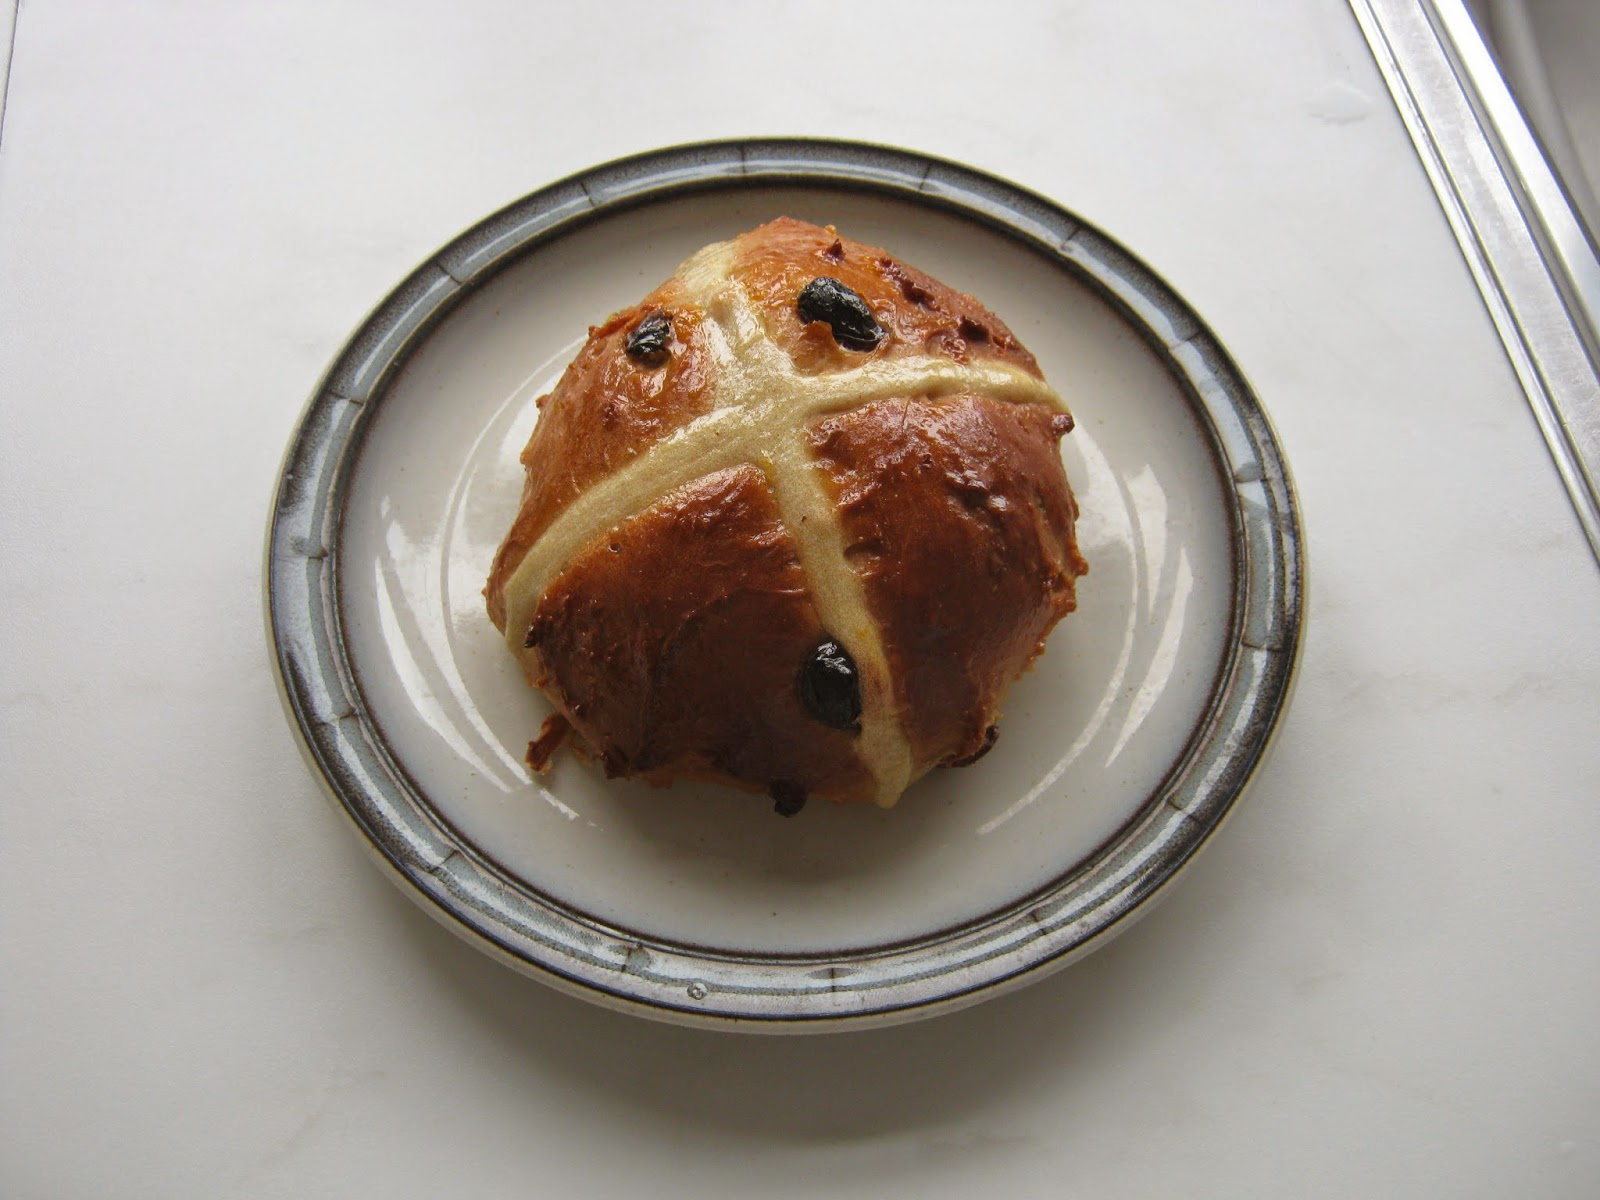 The roundest hot cross bun